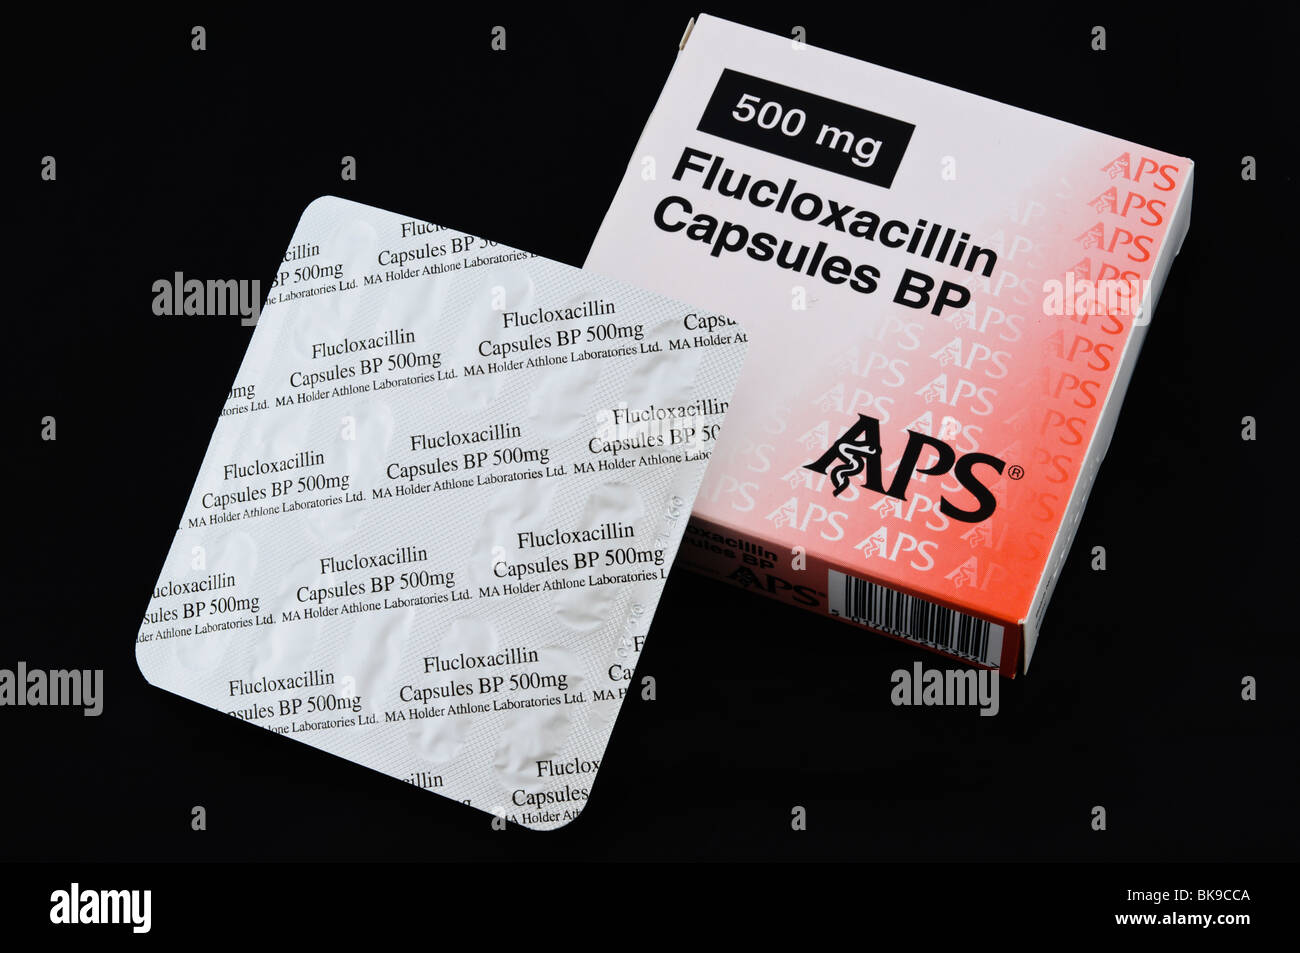 Box and blister pack of Flucloxacillin antibiotic, 500mg - Stock Image